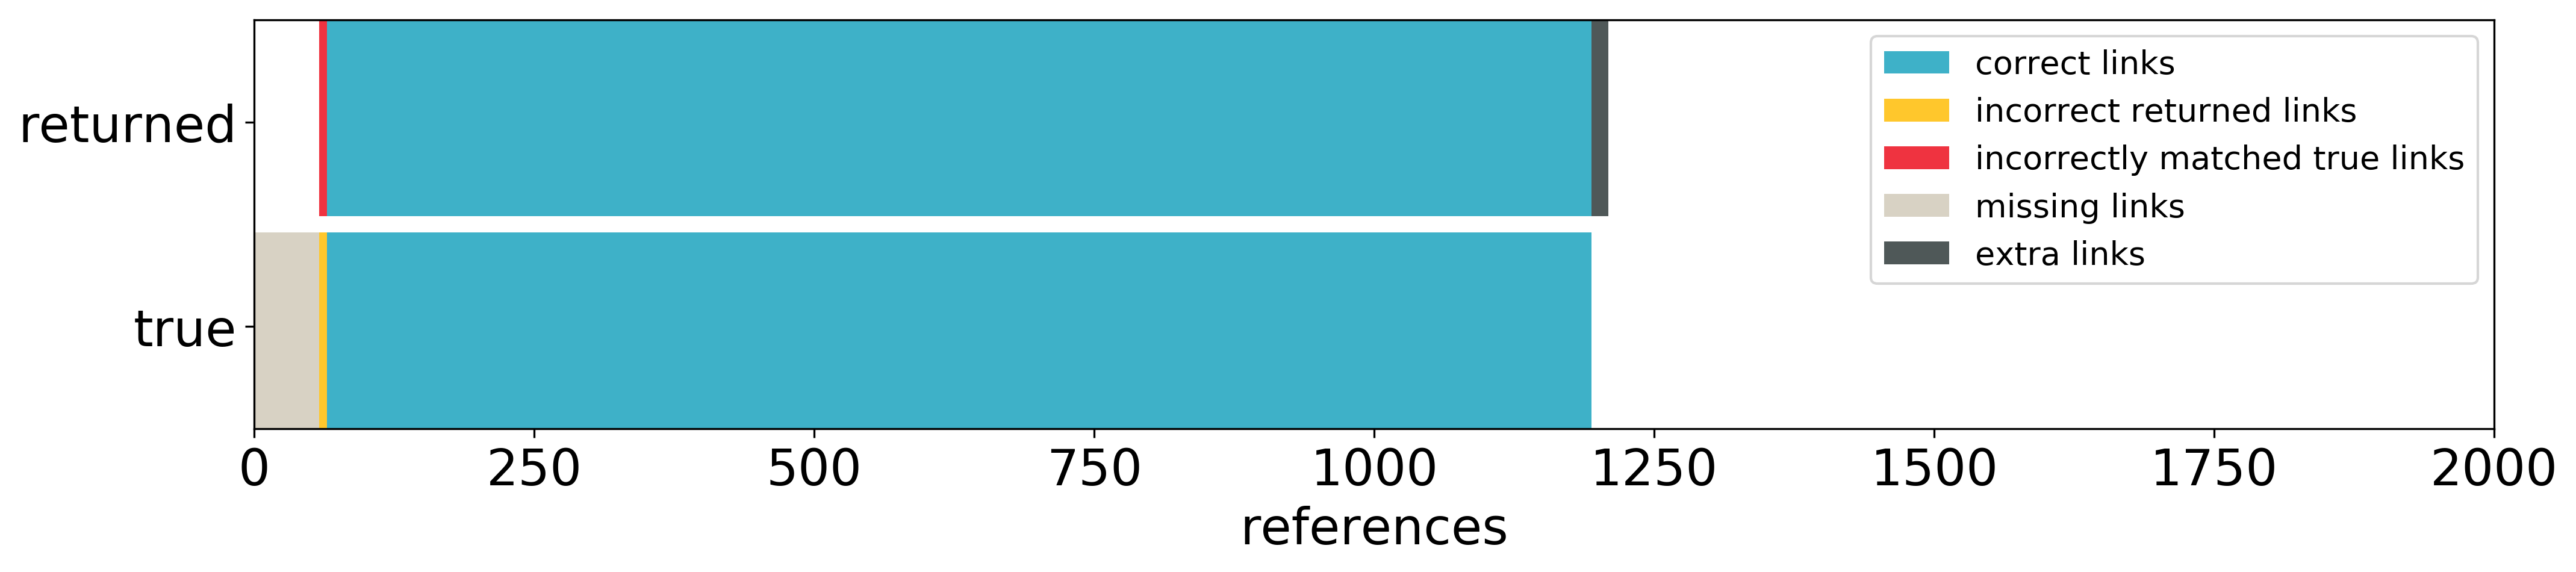 references errors distribution